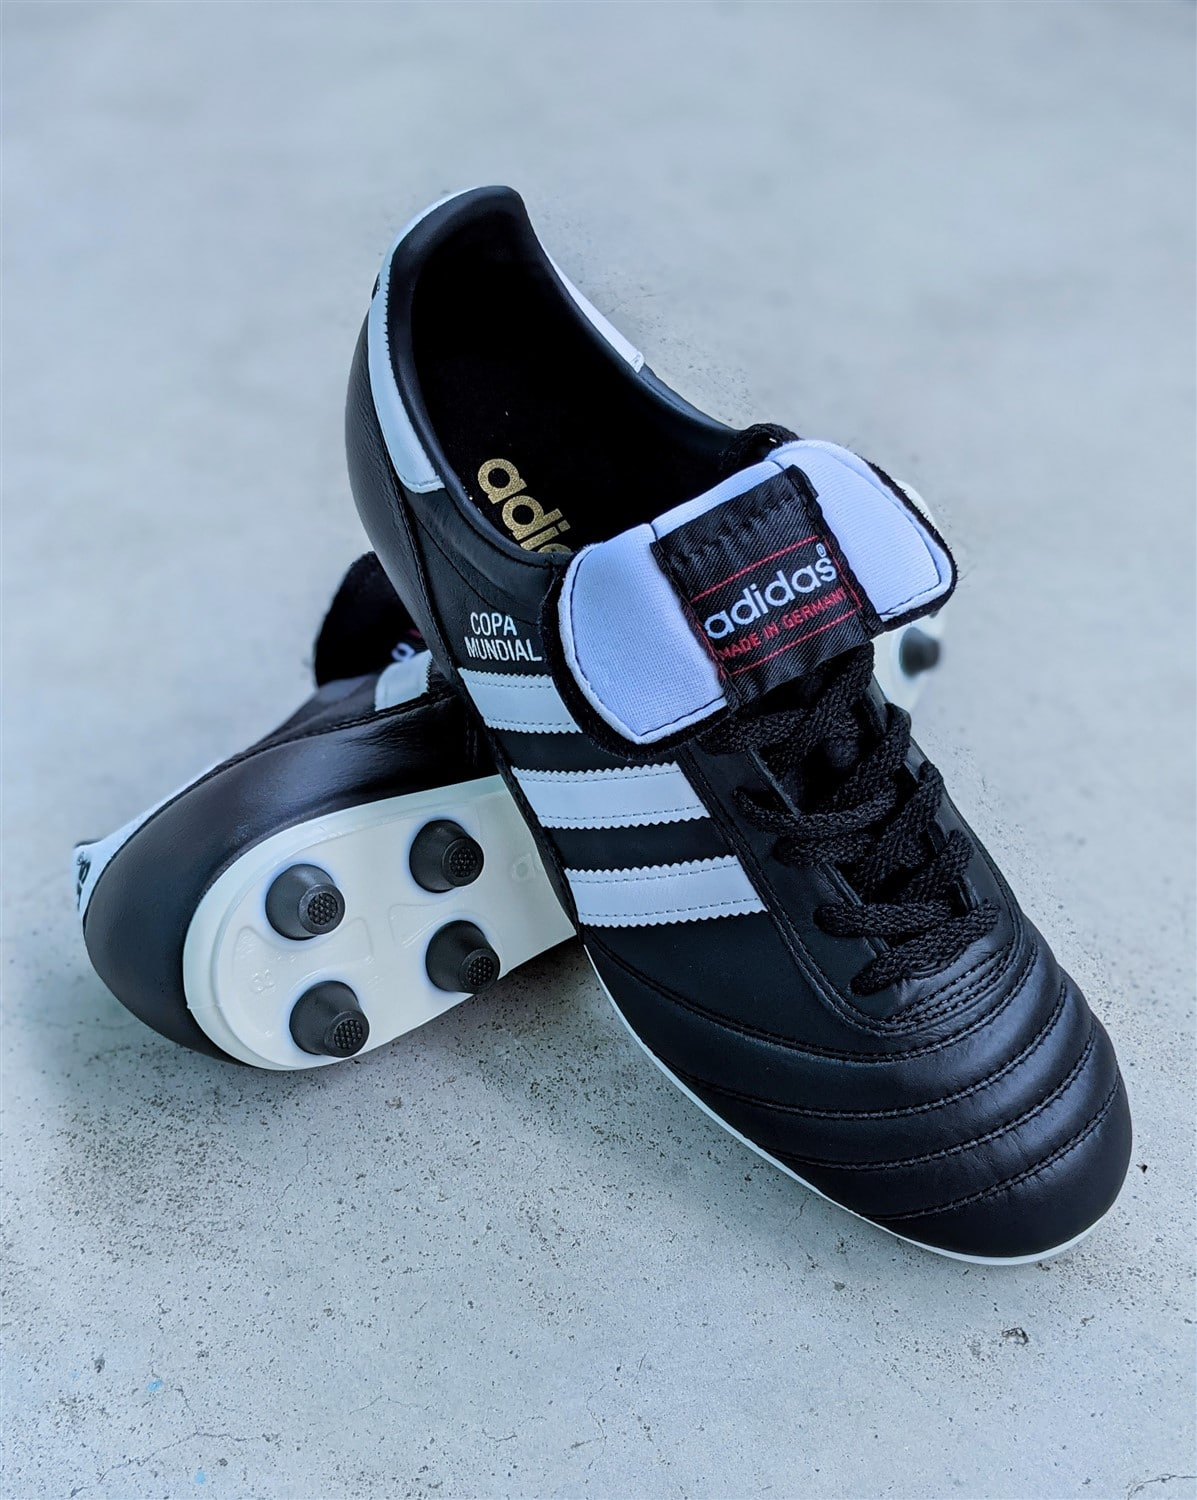 adidas Copa Mundial football boots soccer cleats